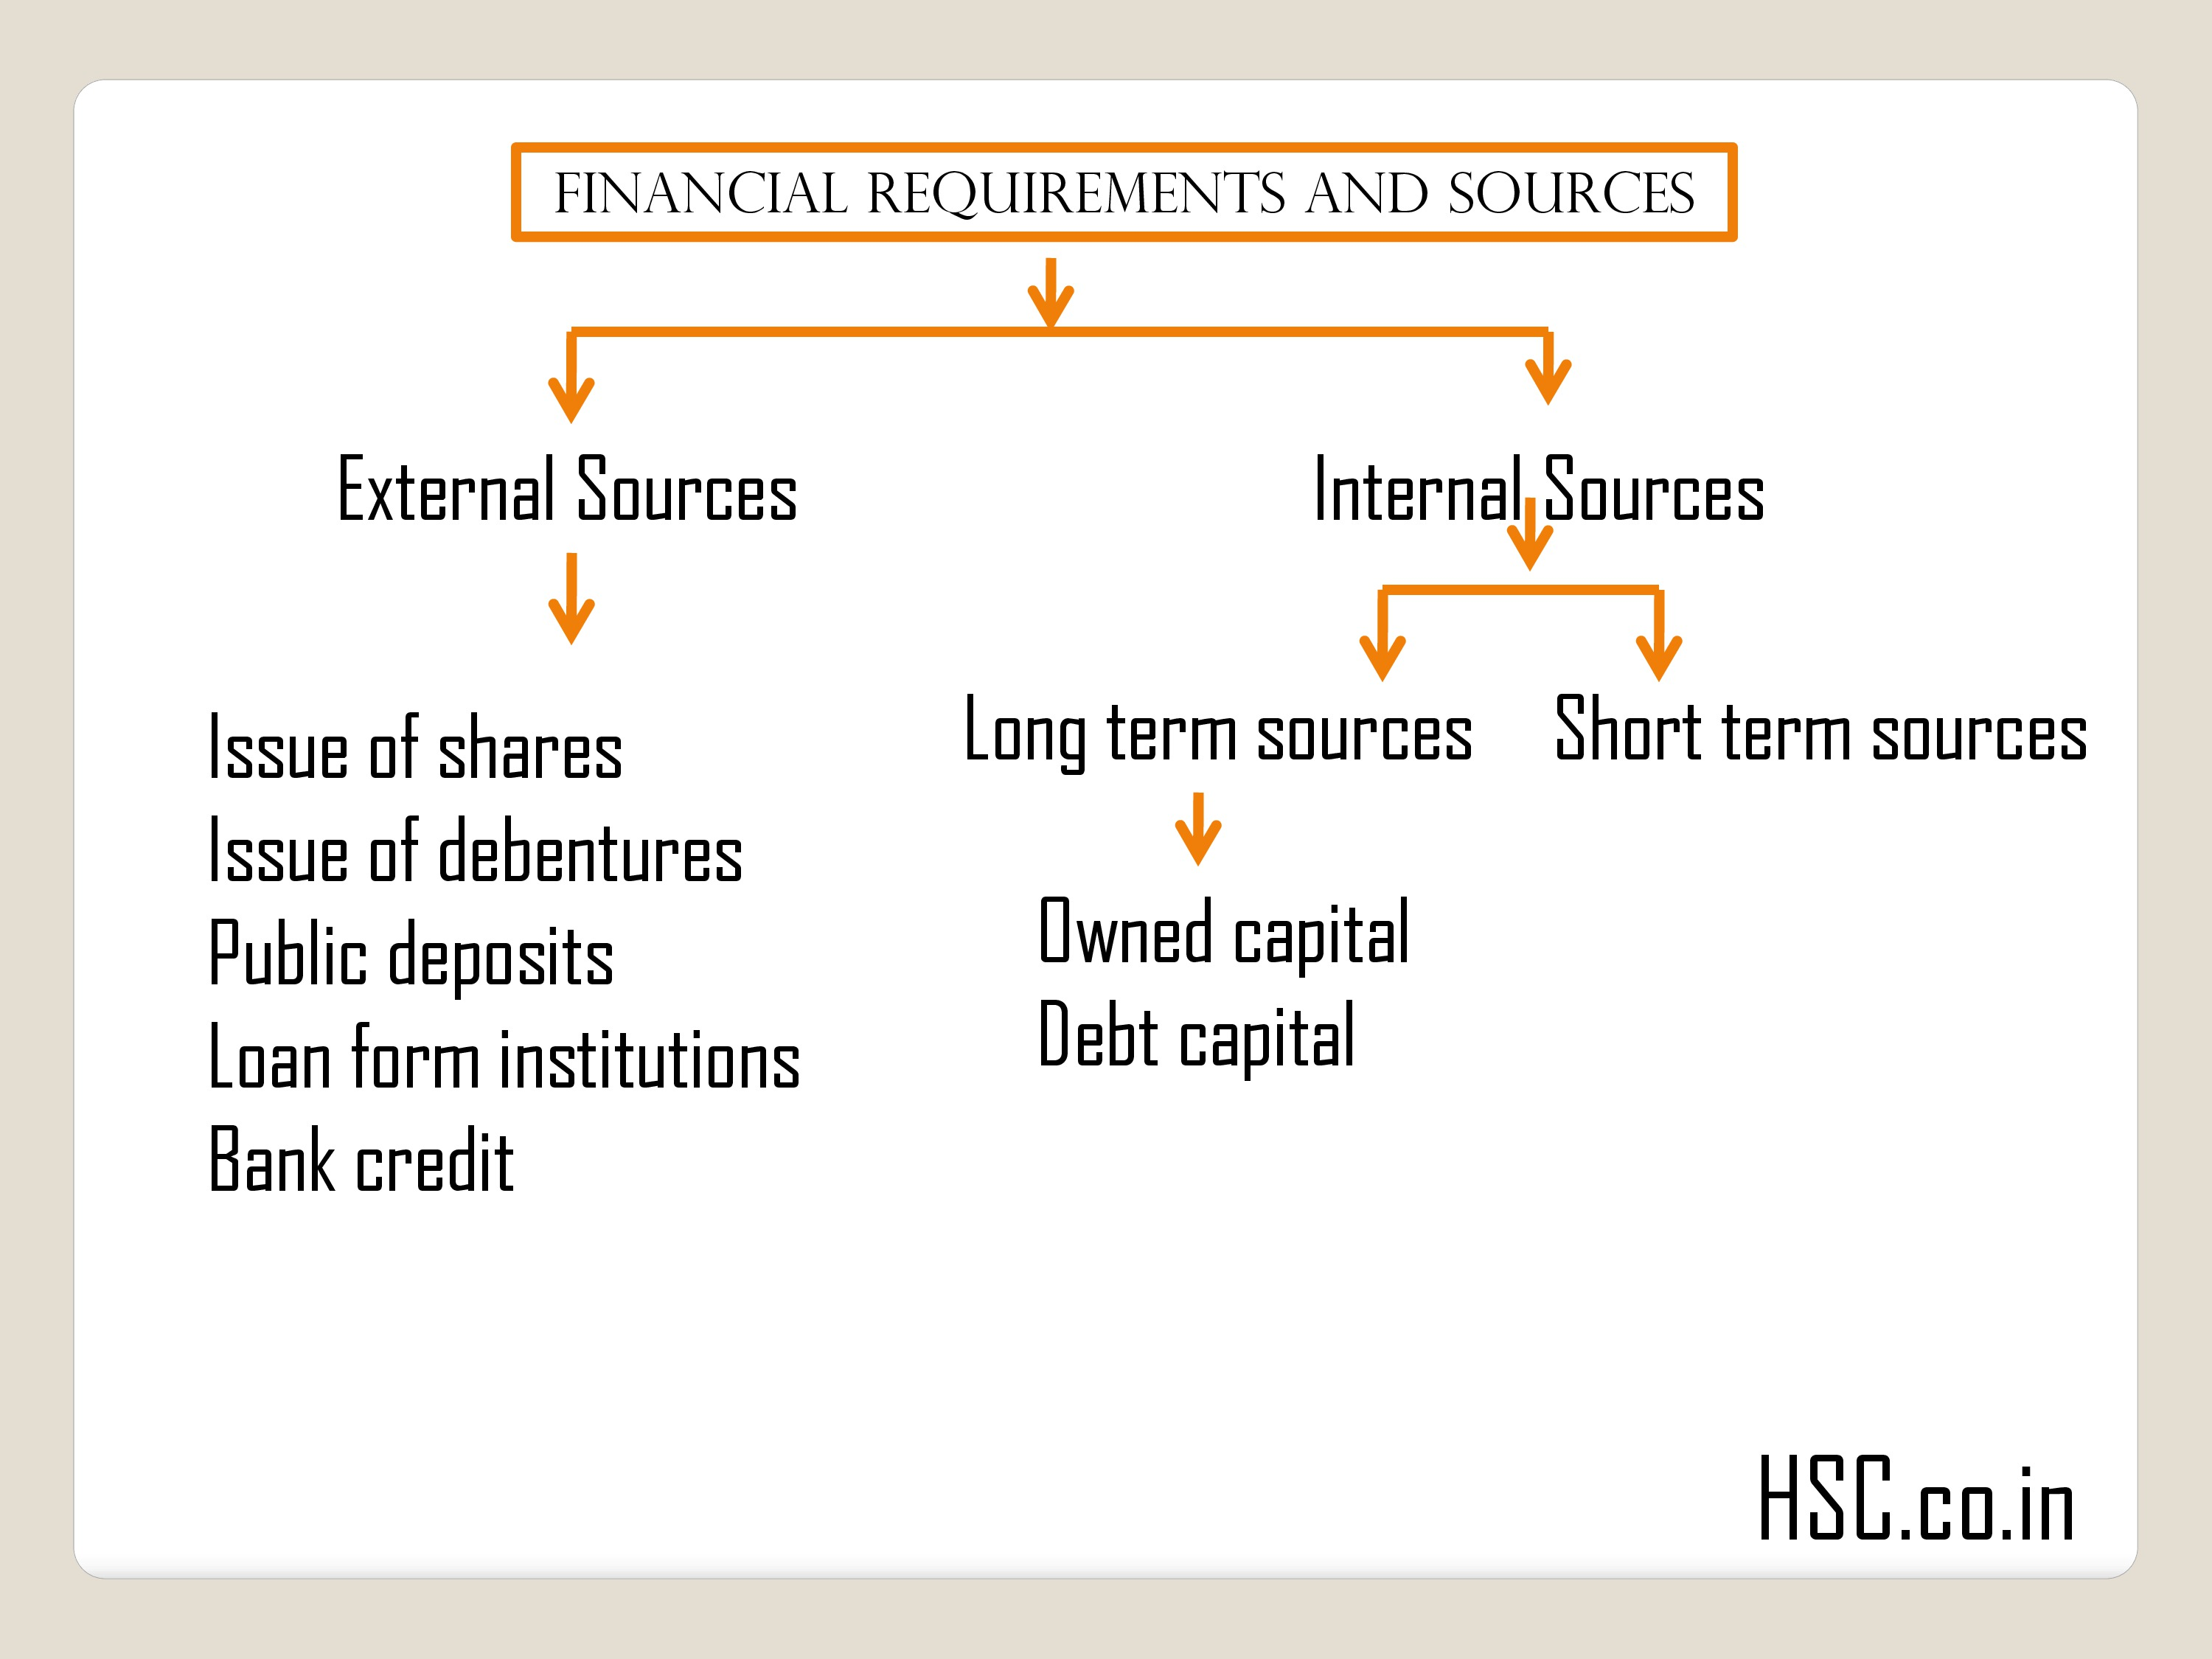 FINANCIAL REQUIREMENTS AND SOURCES